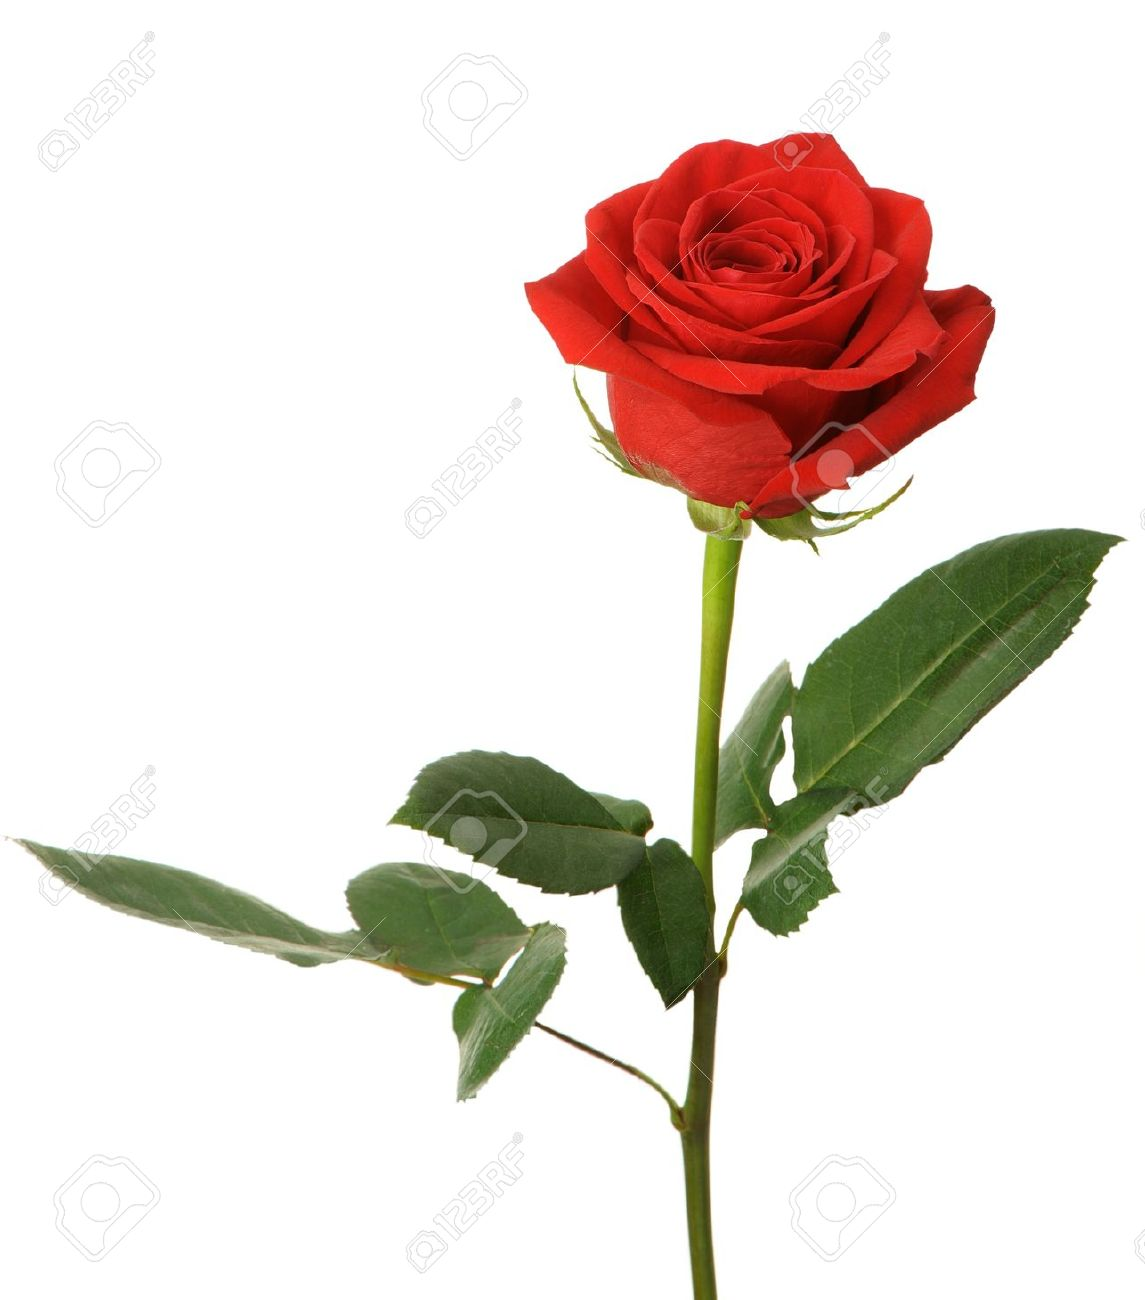 Red rose it is isolated on a white background stock photo red rose it is isolated on a white background stock photo 11984812 biocorpaavc Images